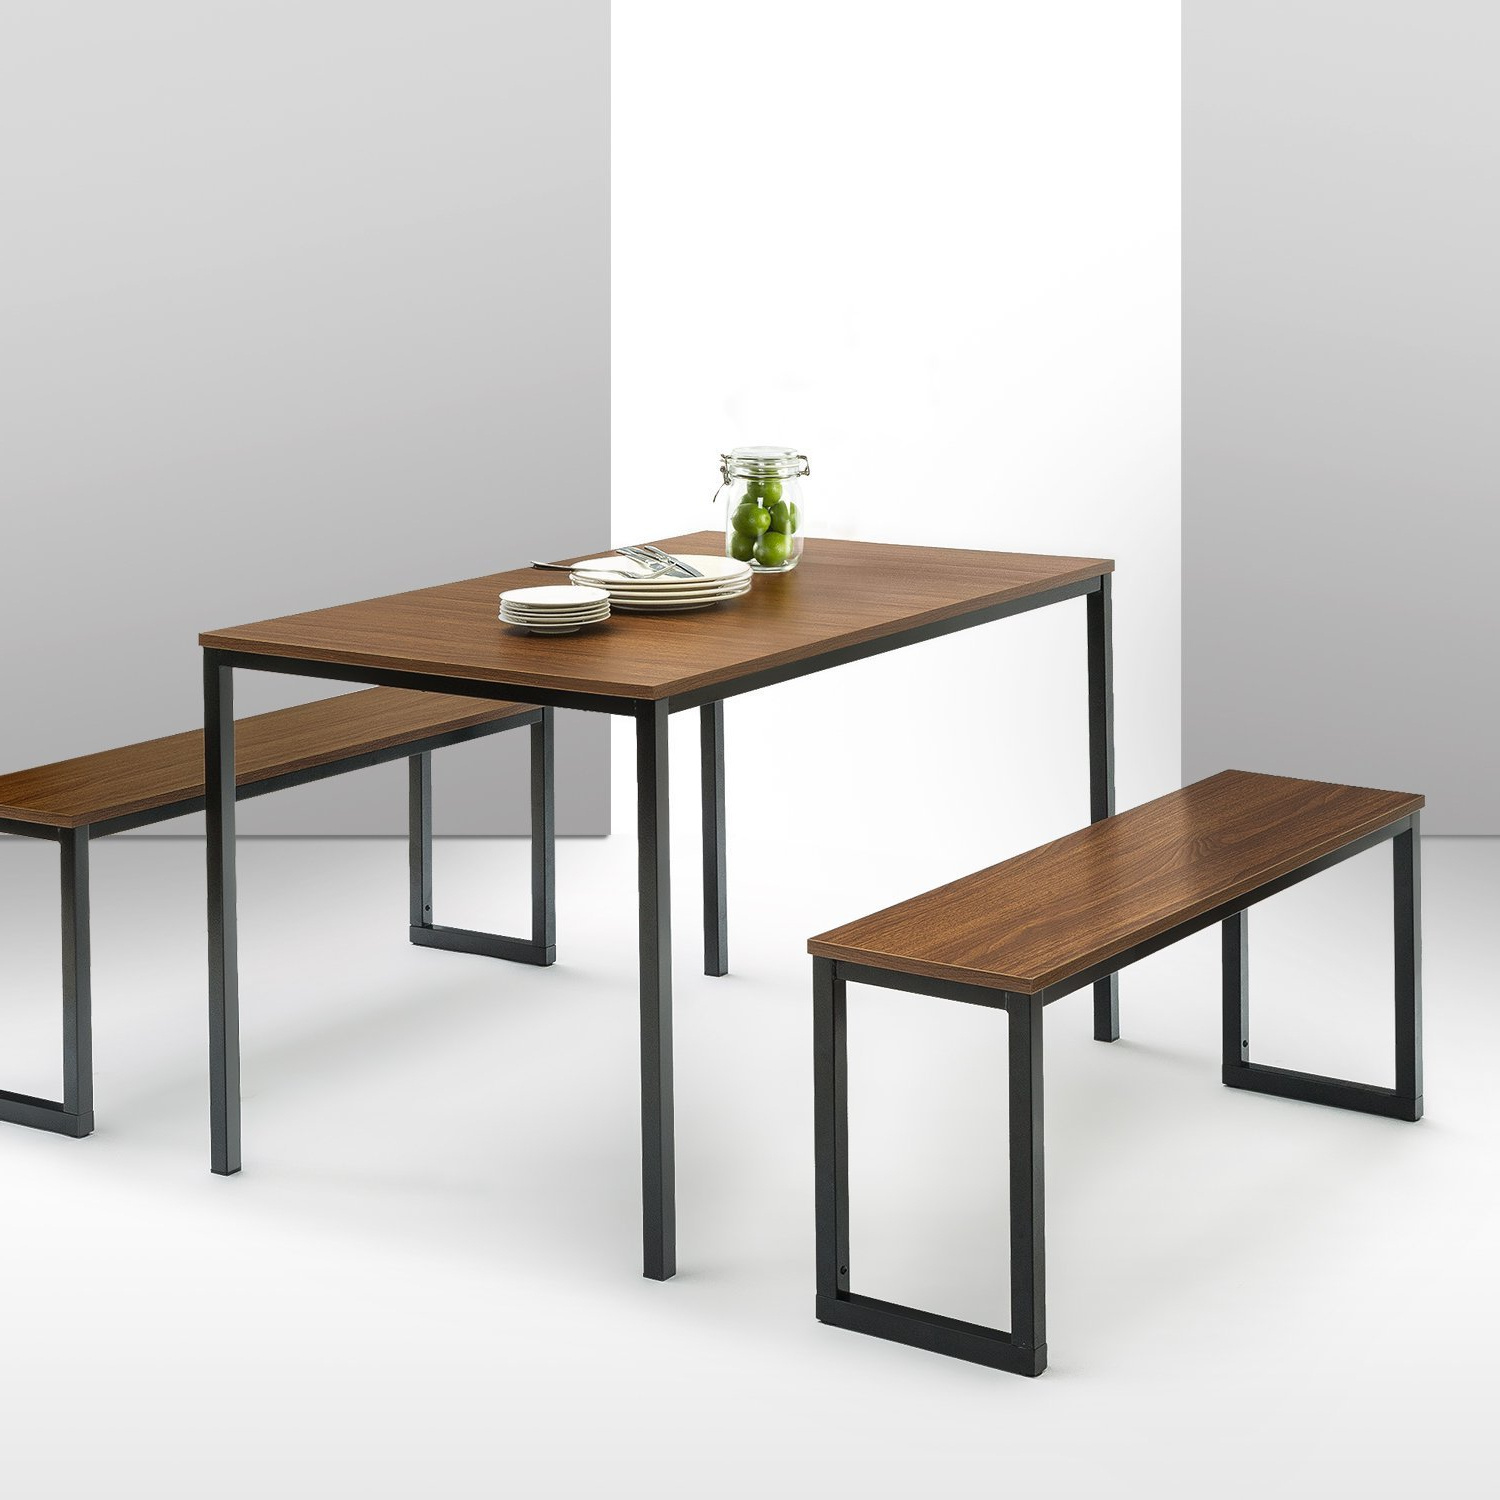 Details About Brown Dining Table Set 3 Piece Benches Breakfast Nook Steel Frame Kitchen New Throughout Trendy Lillard 3 Piece Breakfast Nook Dining Sets (View 3 of 20)